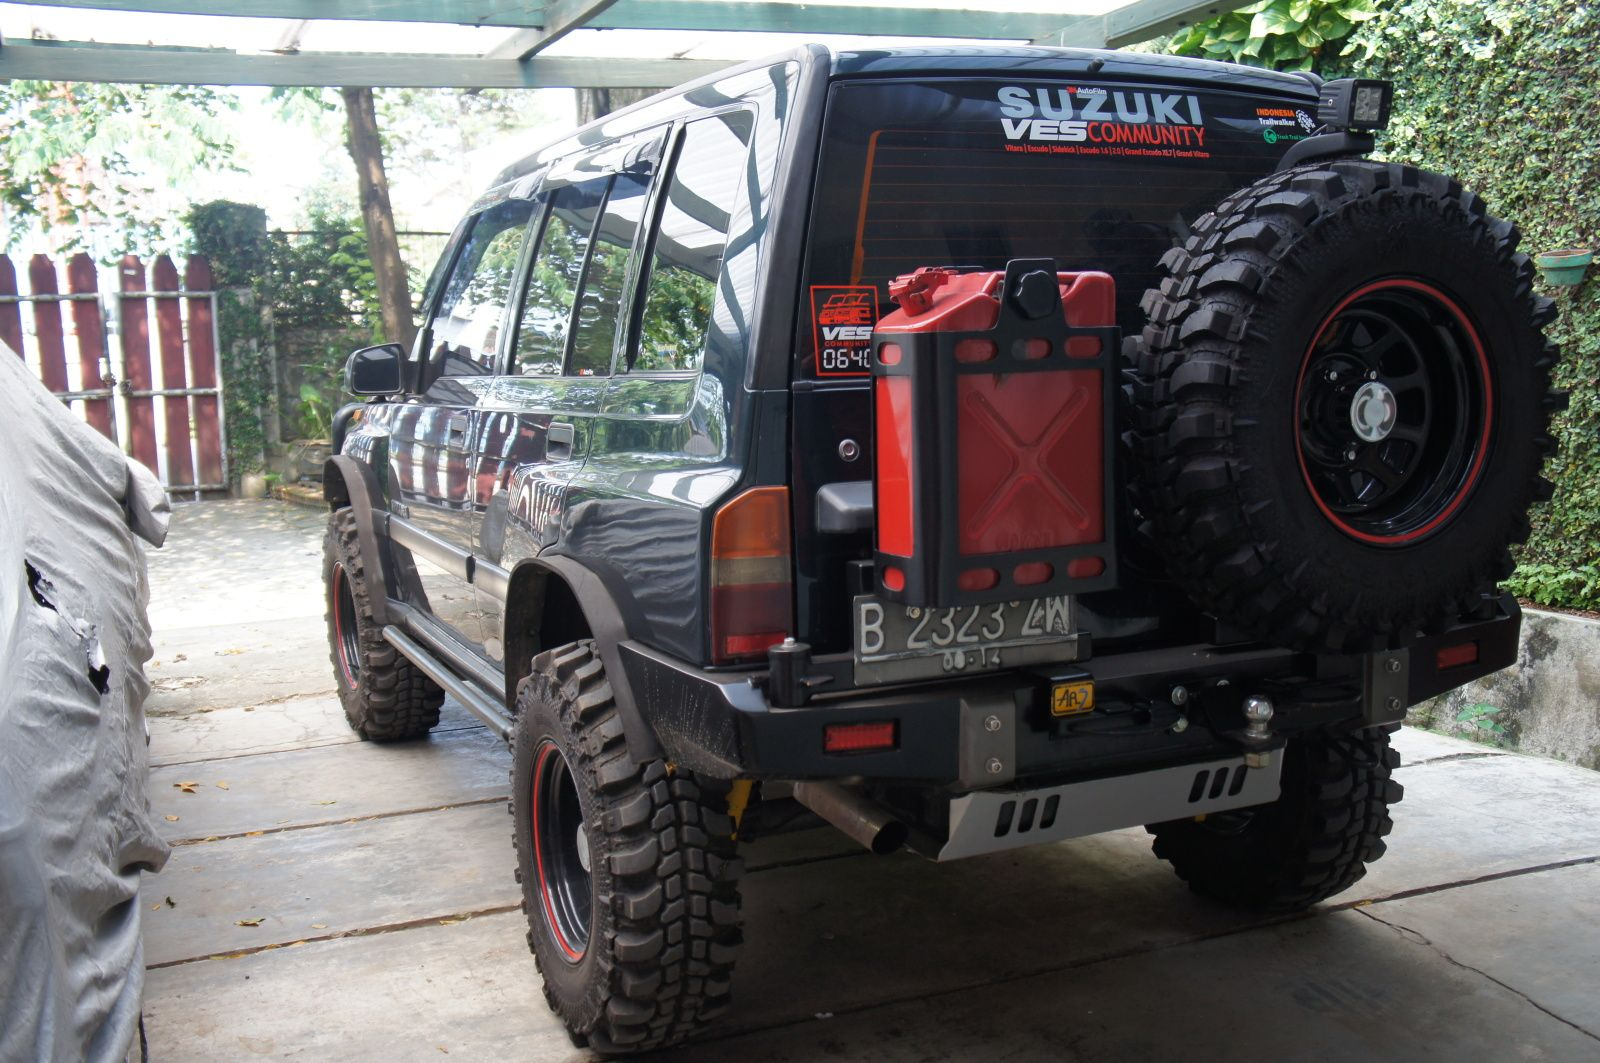 Pin By Ciprian Bismark On Suzuki Vitara / Sidekick